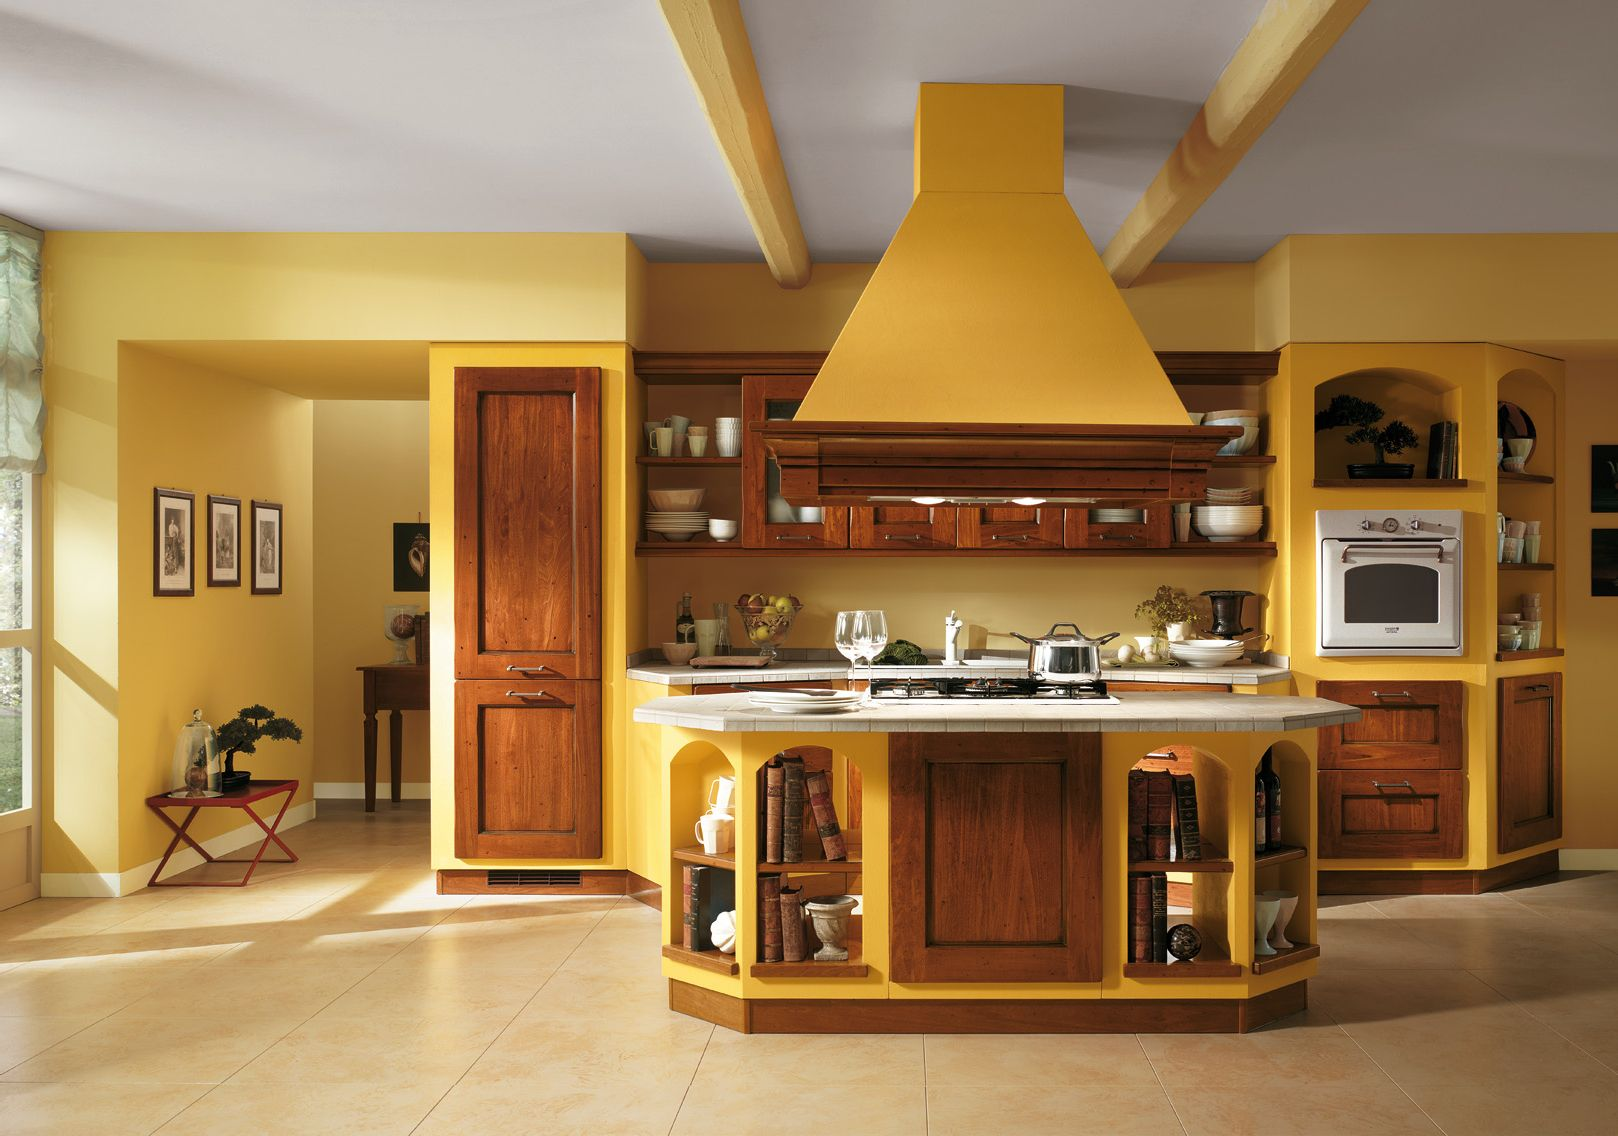 Kitchen Interior Colors Italian Kitchen Color Schemes For Open Interior Design Big Chill